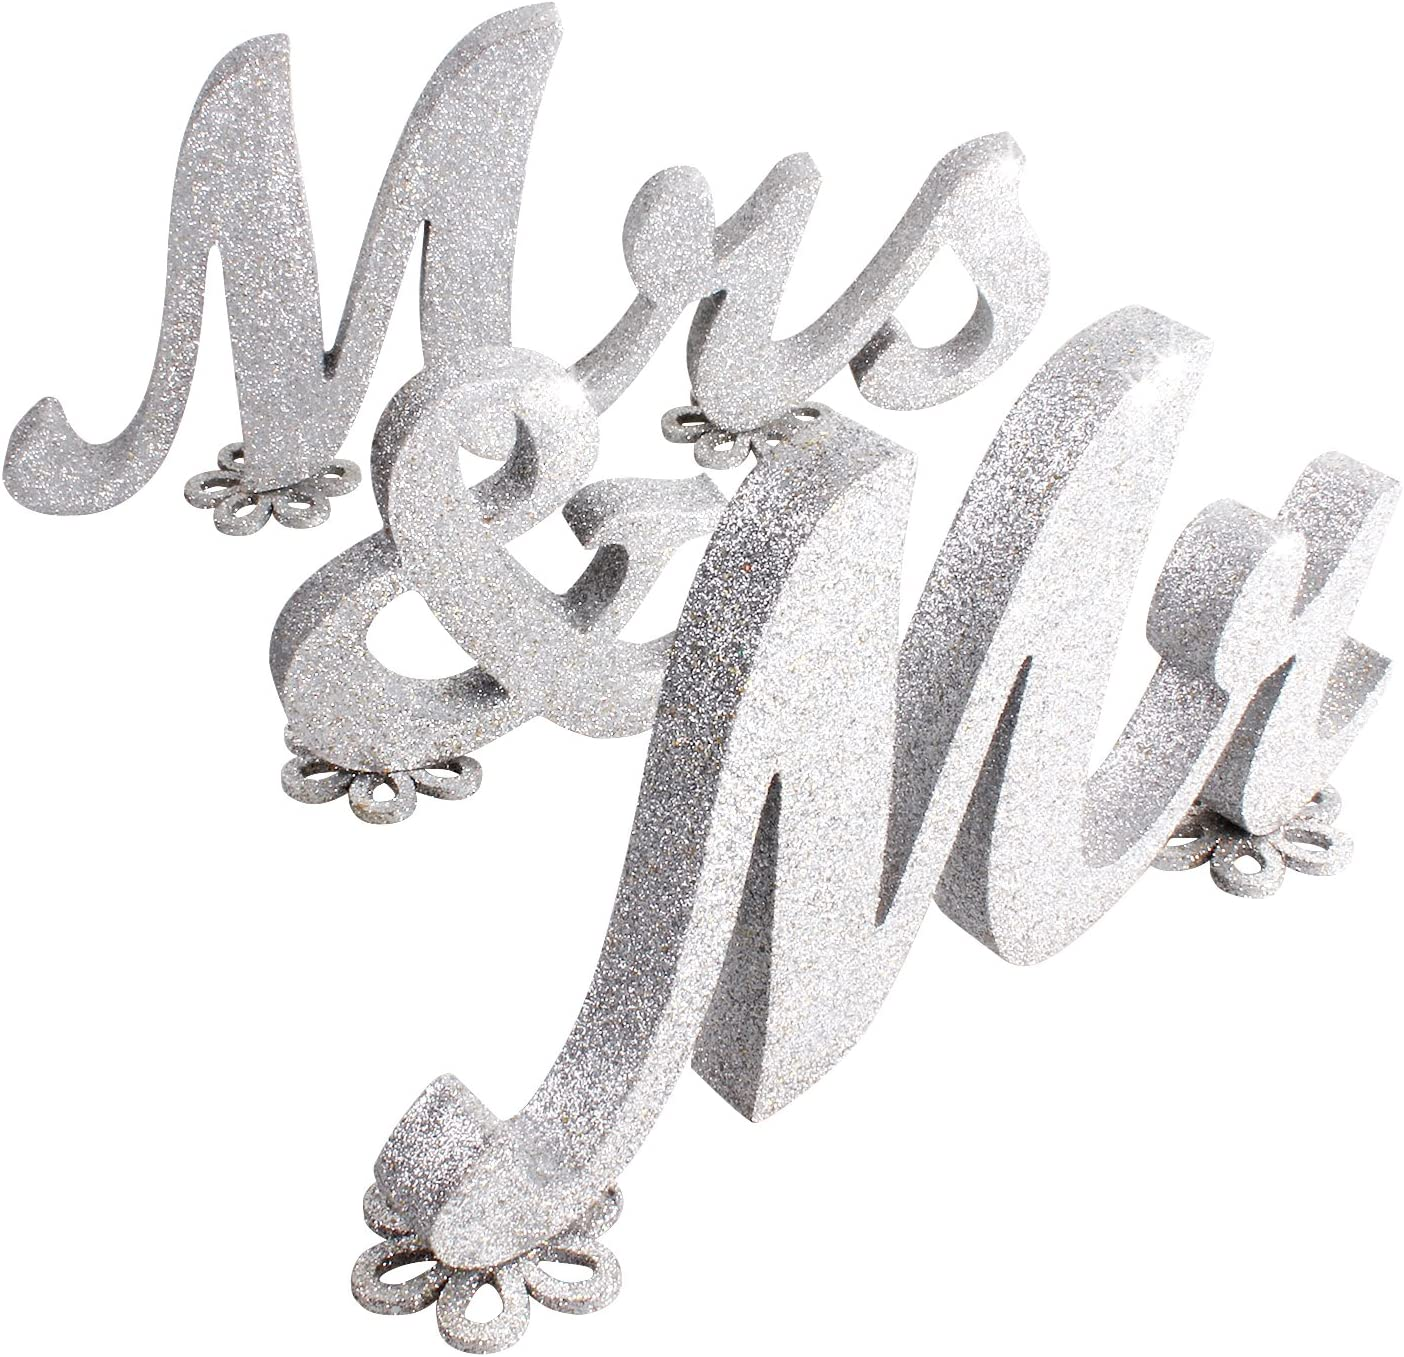 "SROOD 30"" x 6"" Mr and Mrs Sign Wedding Decorations Mr & Mrs Sign Sweetheart Wedding Table Decorations Wooden Letters Silver Glitter"